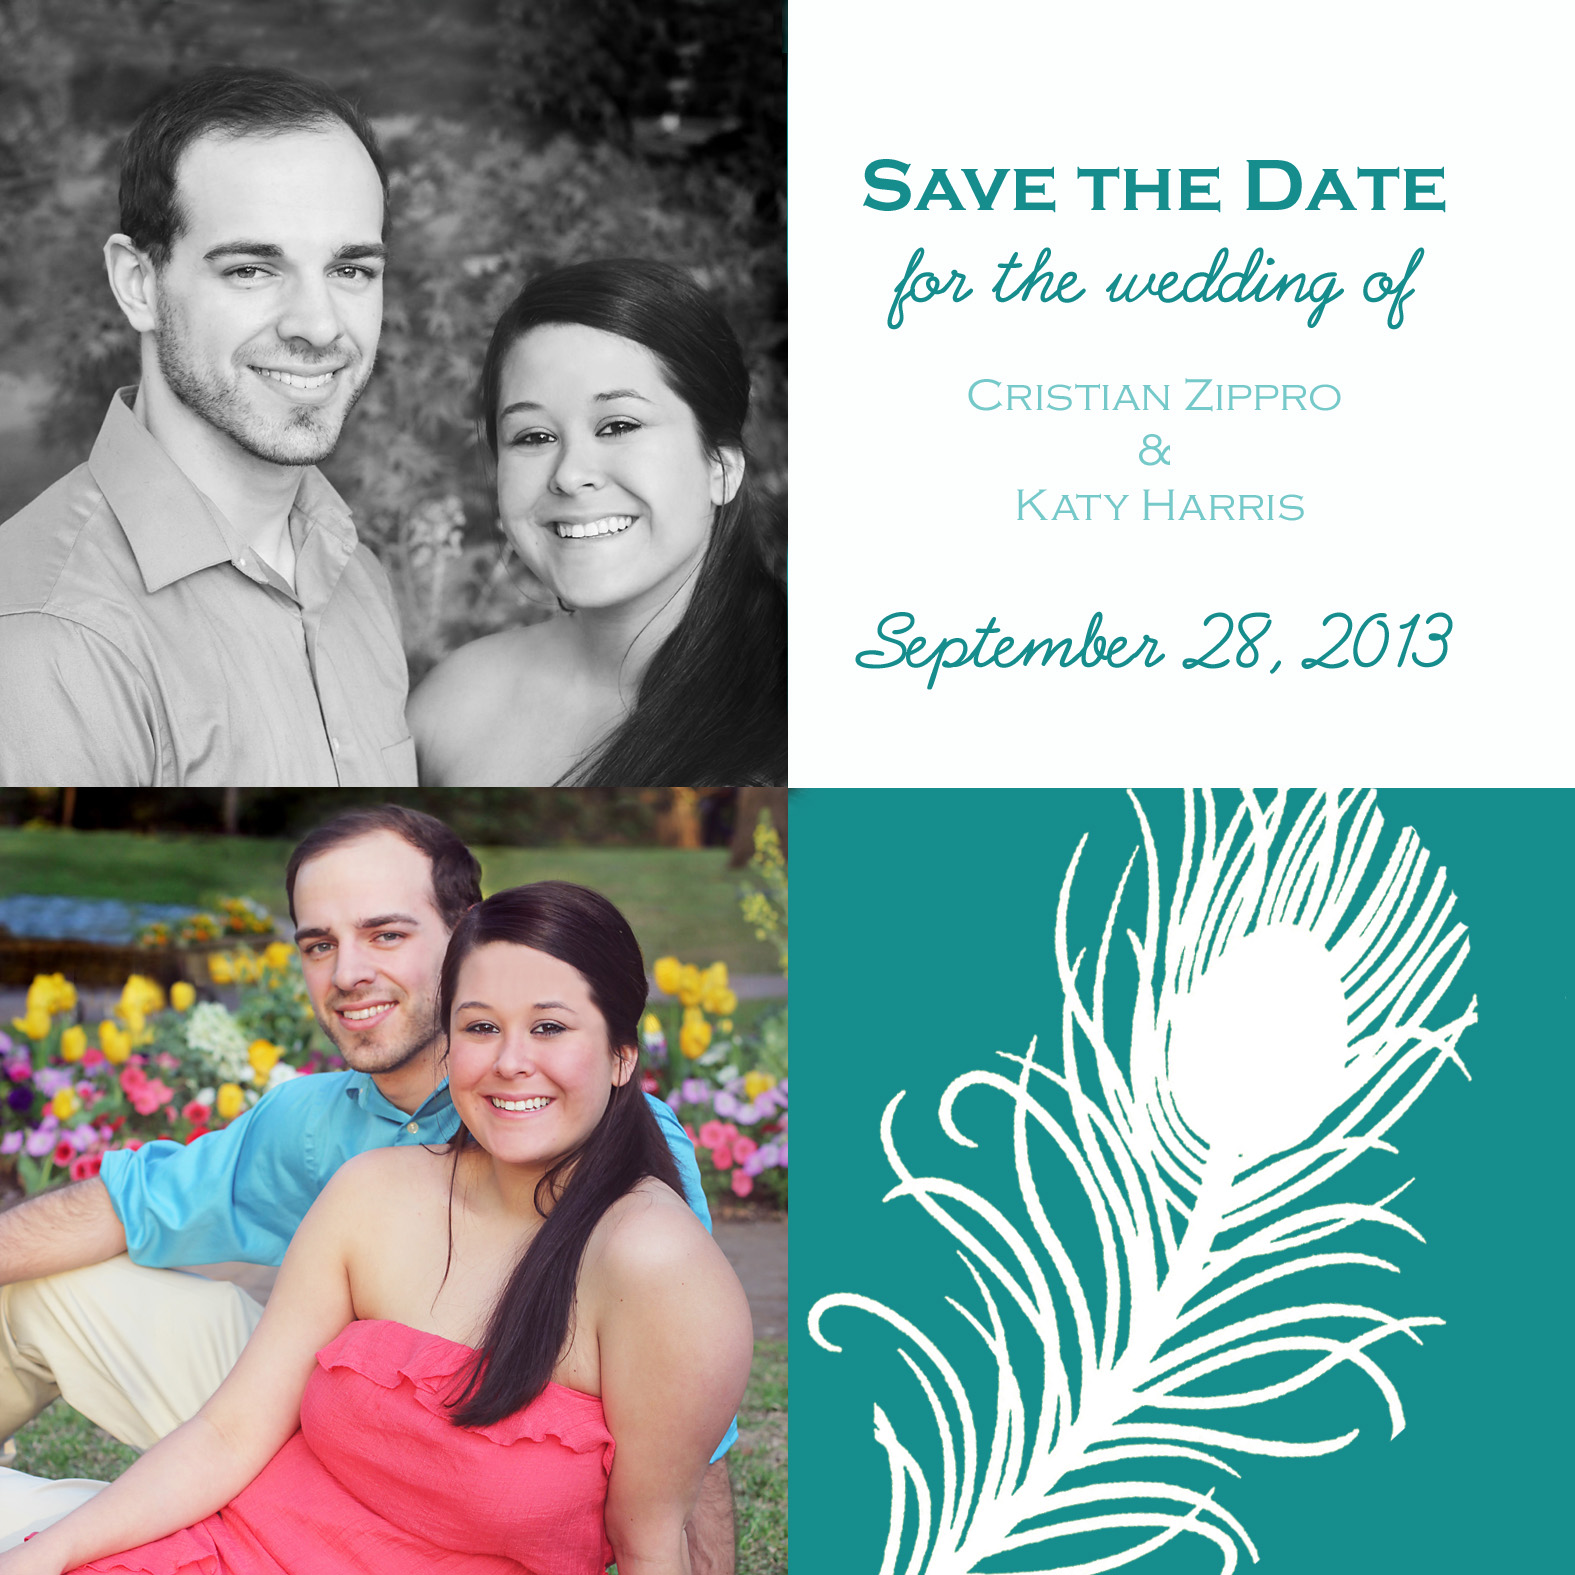 Peacock Wedding, Save the Date, Save the Date Magnet, Grapevine Engagement, Teal Wedding Color Ideas, Peacock Feather